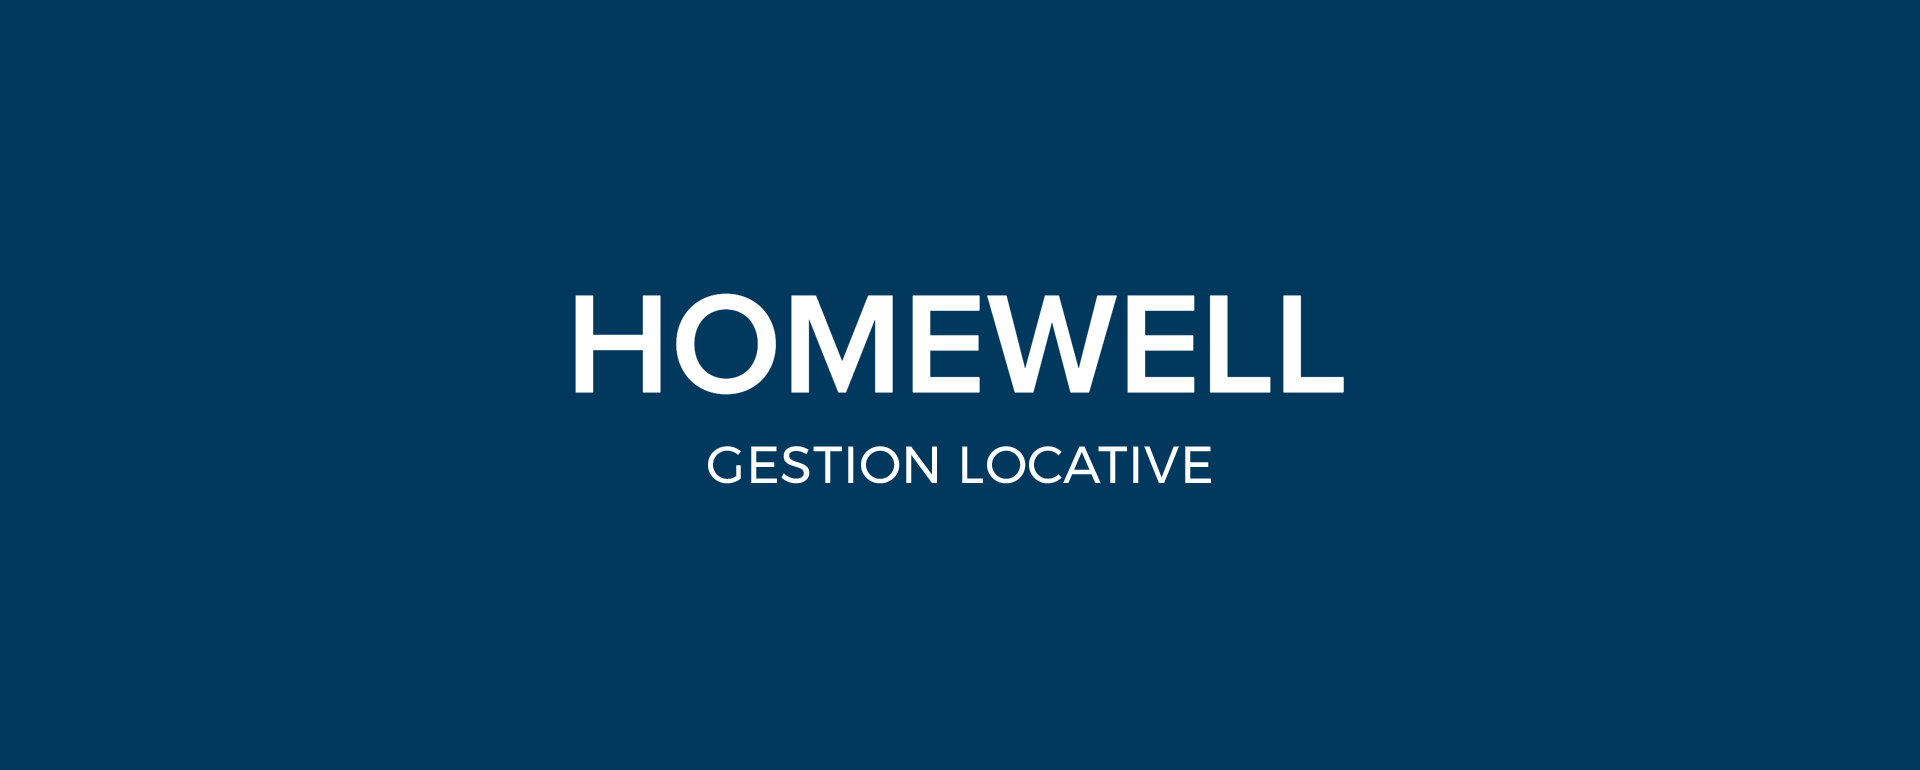 Agence immobilière Lausanne Vaud Homewell Agence Immobiliere Homewell Lausanne Morges Vevey Montreux Vaud header gestion locative front